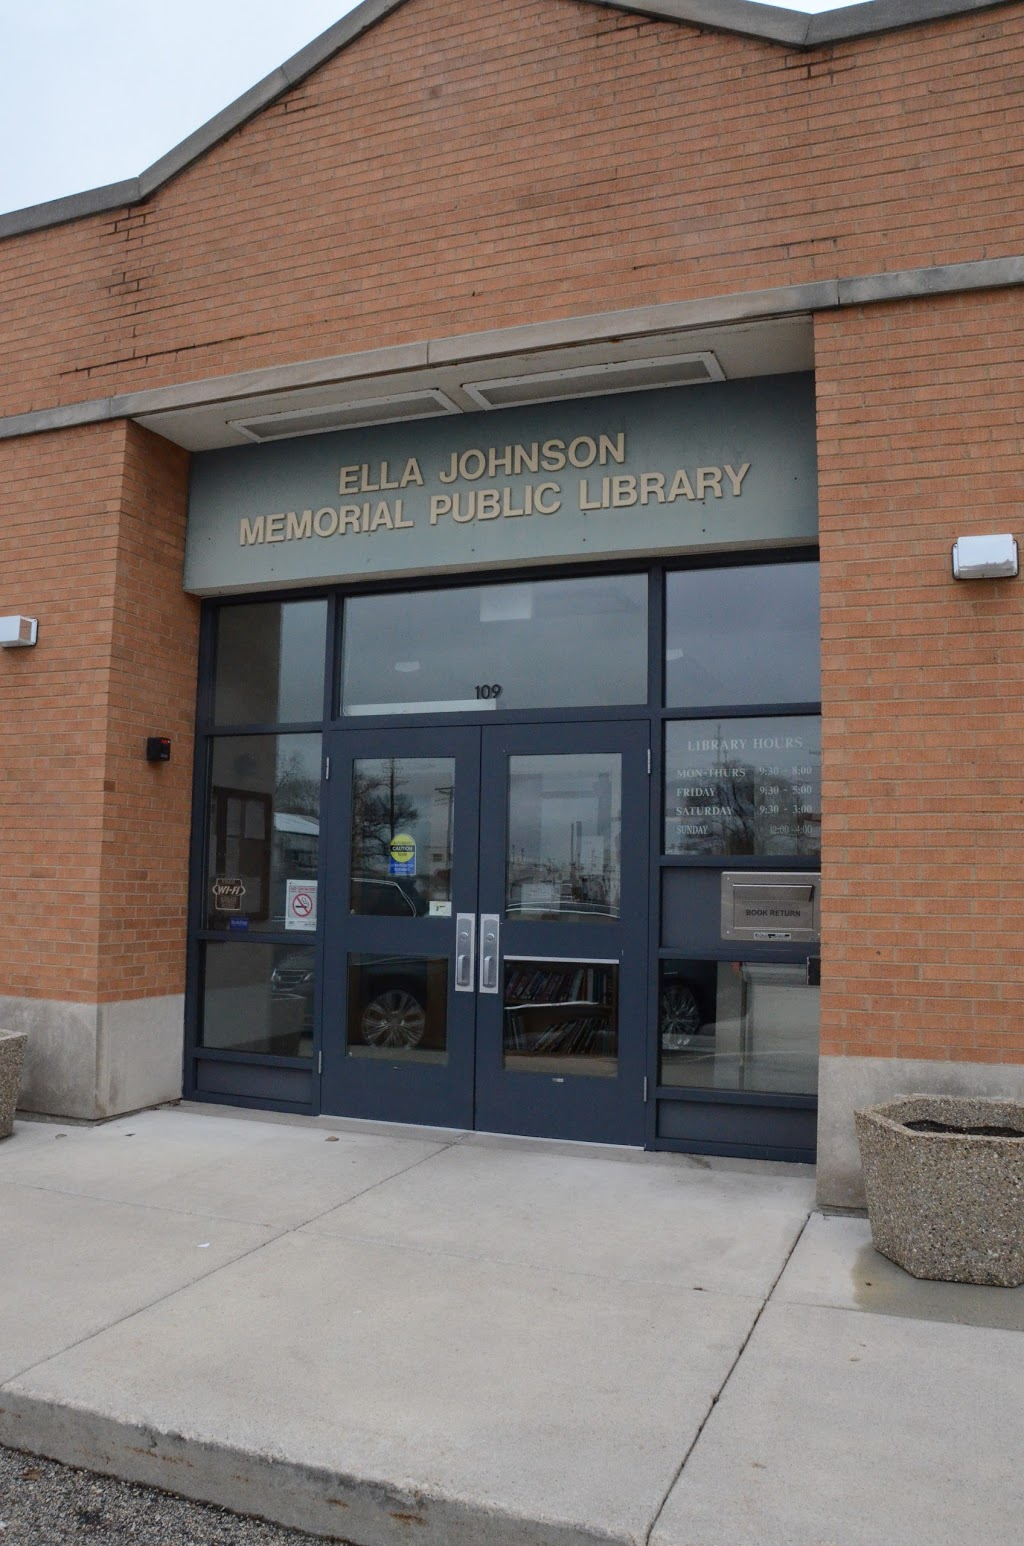 Ella Johnson Public Library - library  | Photo 10 of 10 | Address: 109 S State St, Hampshire, IL 60140, USA | Phone: (847) 683-4490